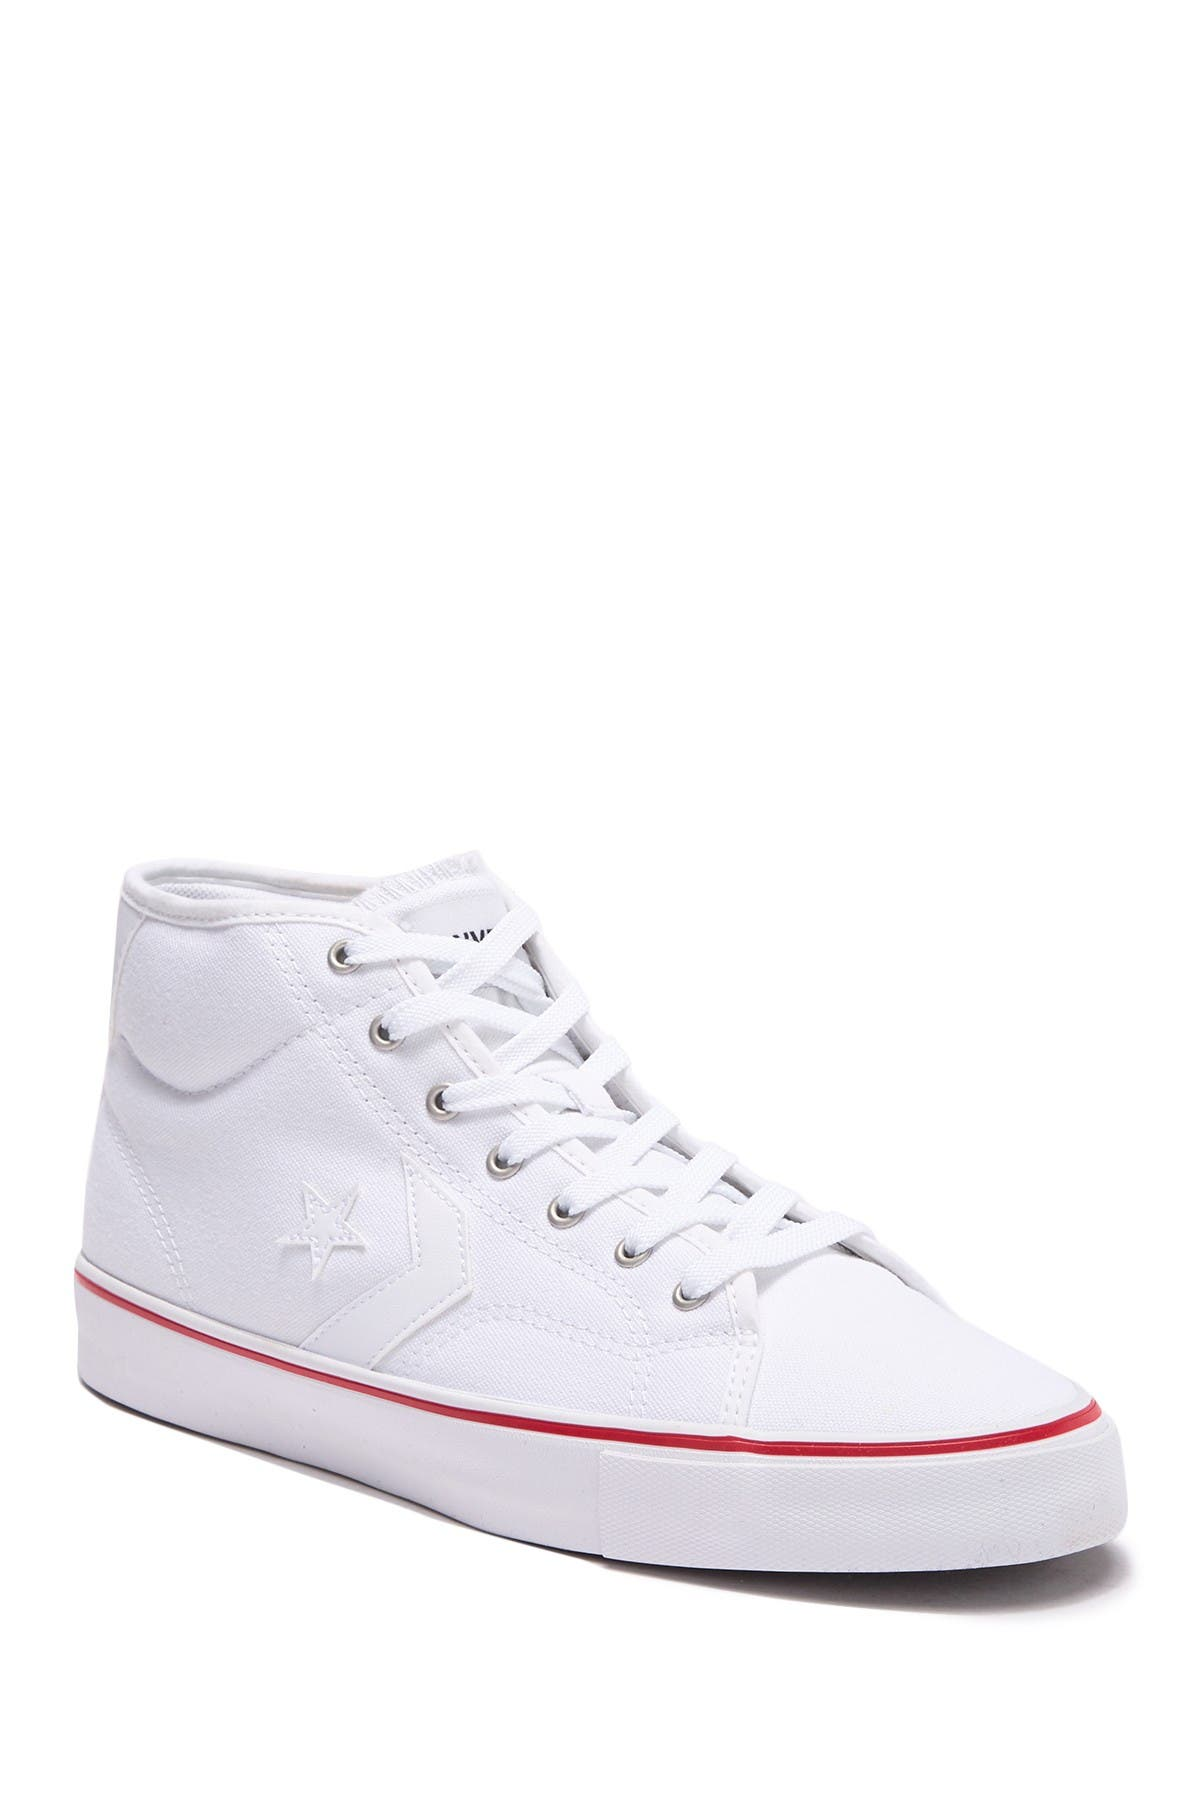 Image of Converse Star Replay Sneaker